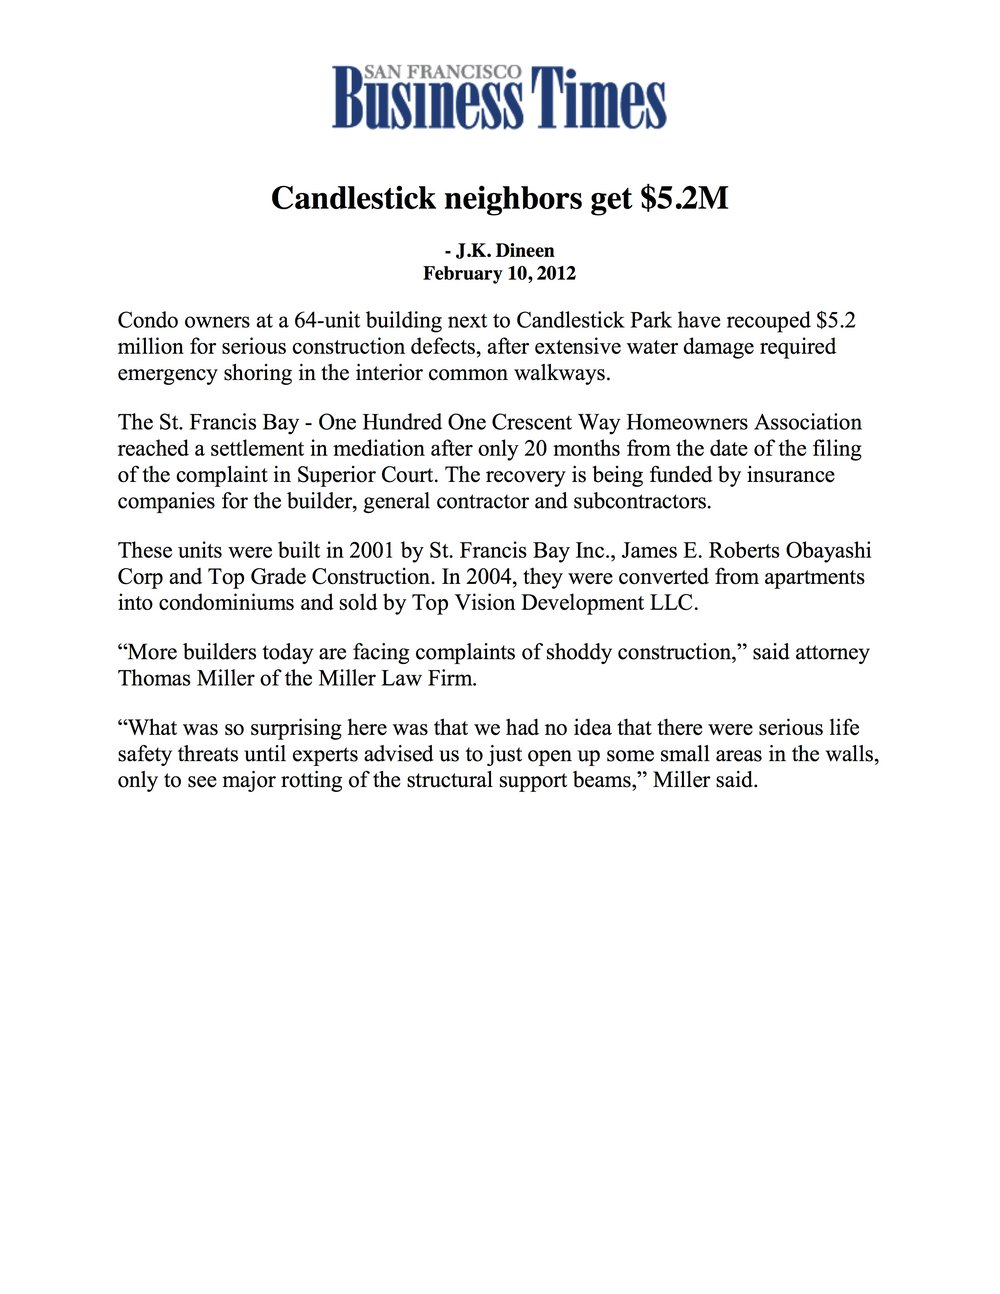 SF Business Times - Candlestick Neighbors Get $5.2M